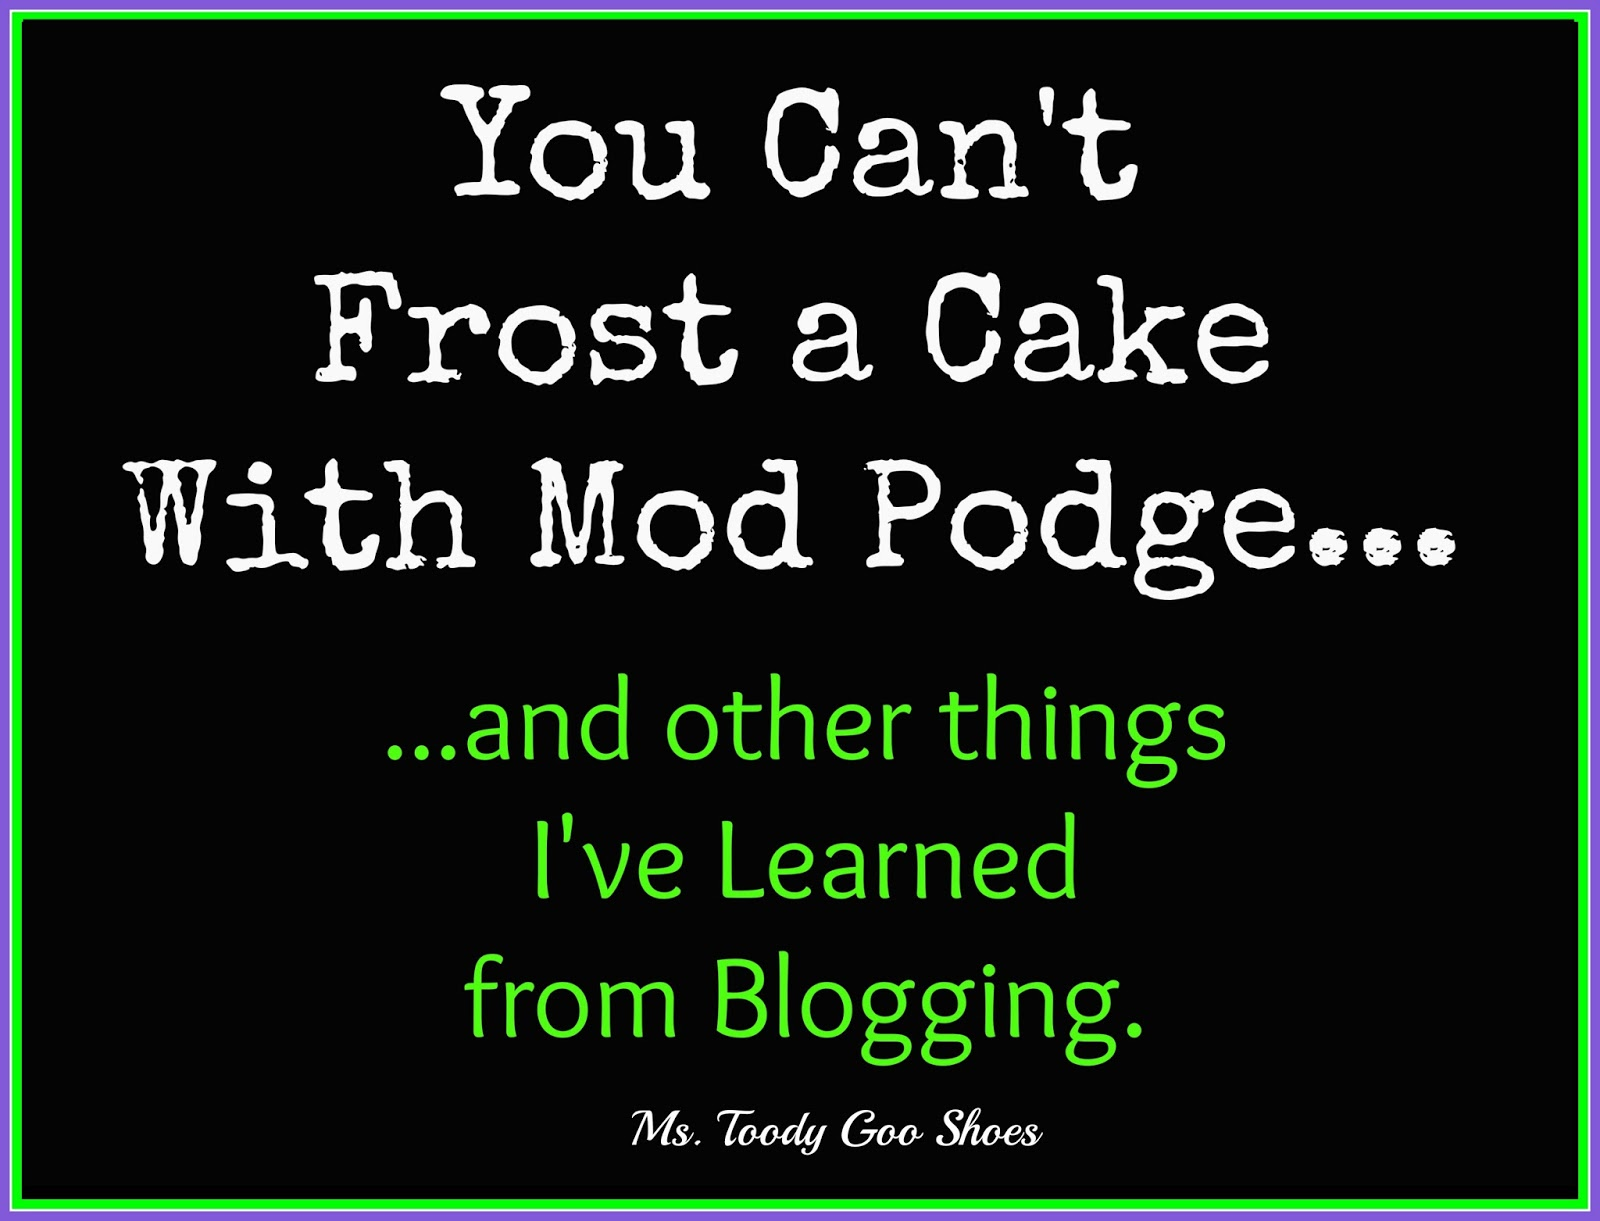 Things I Learned From Blogging --- Ms. Toody Goo Shoes